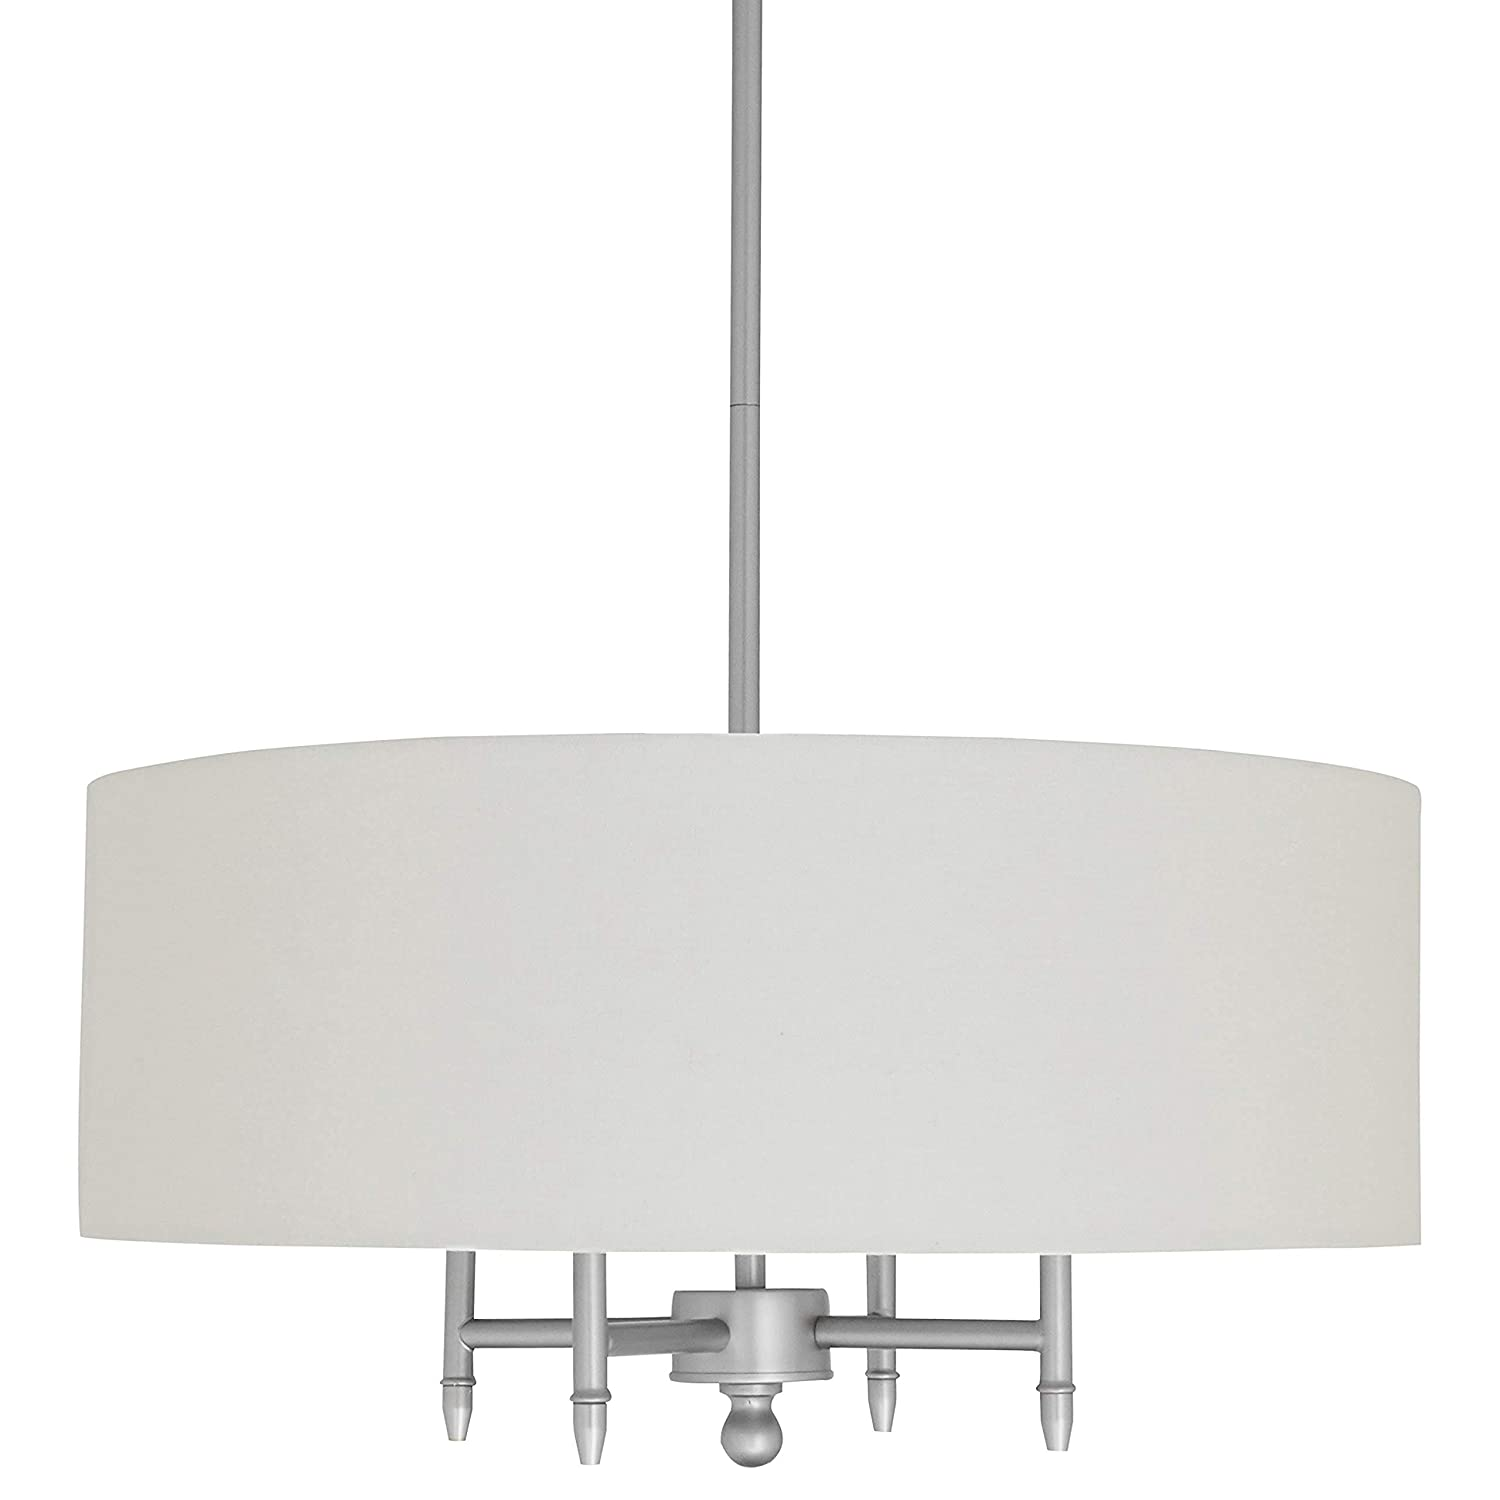 "Stone & Beam Classic 4-Arm Chandelier, 42"" H, Brushed Nickel, White Shade"